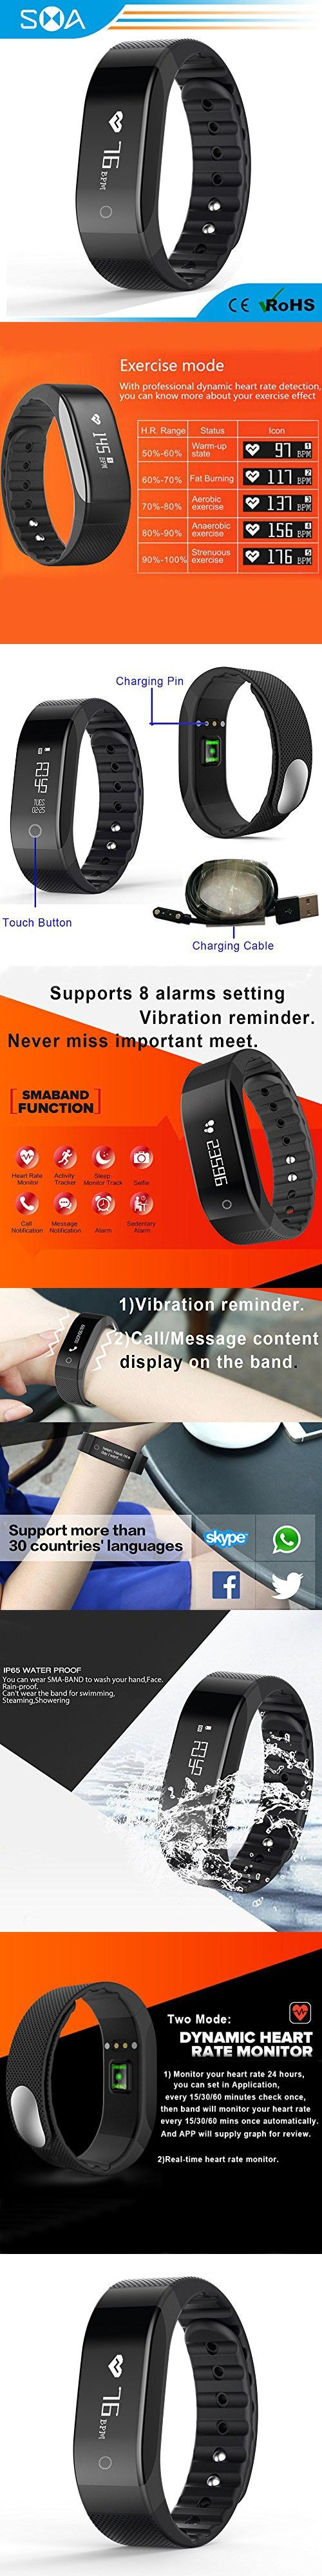 SMA Fitness Tracker with Heart Rate Monitor,Waterproof Wristband Watch,Smart Bracelet Compatible Iphone,Android phones men/women Black